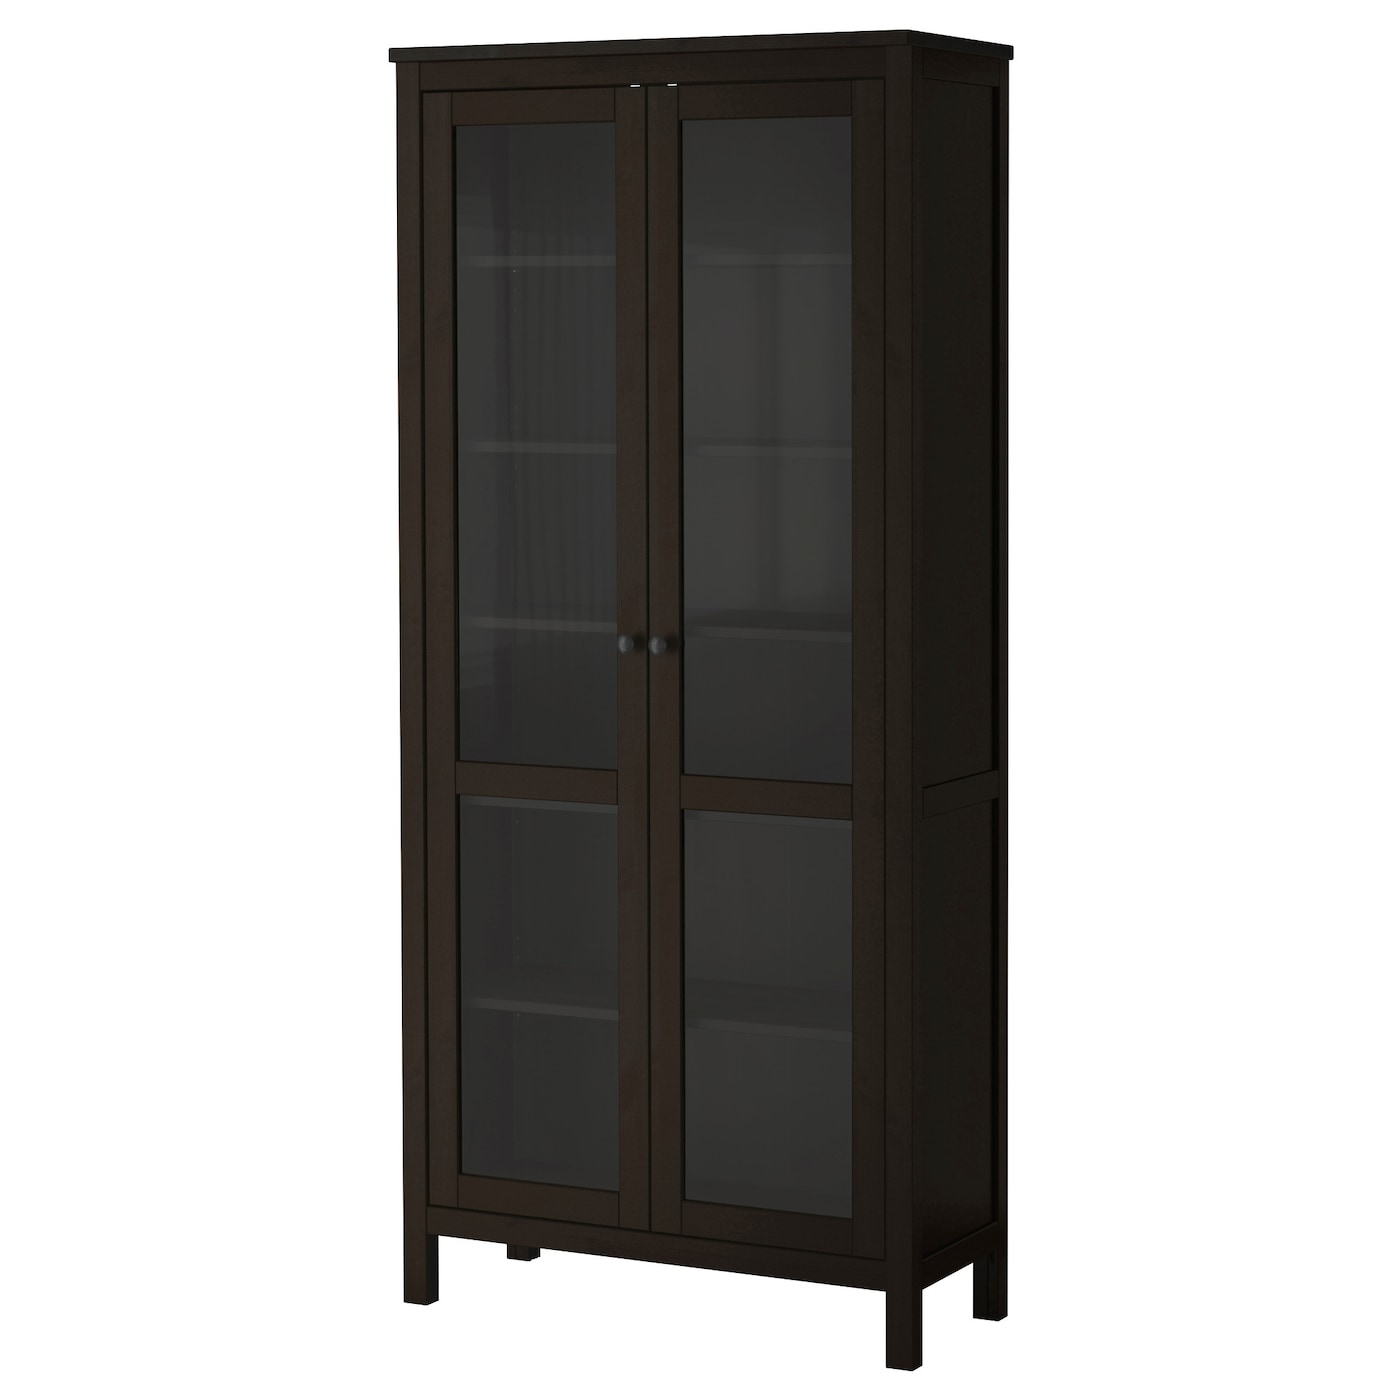 hemnes glass door cabinet black brown 90x197 cm ikea. Black Bedroom Furniture Sets. Home Design Ideas